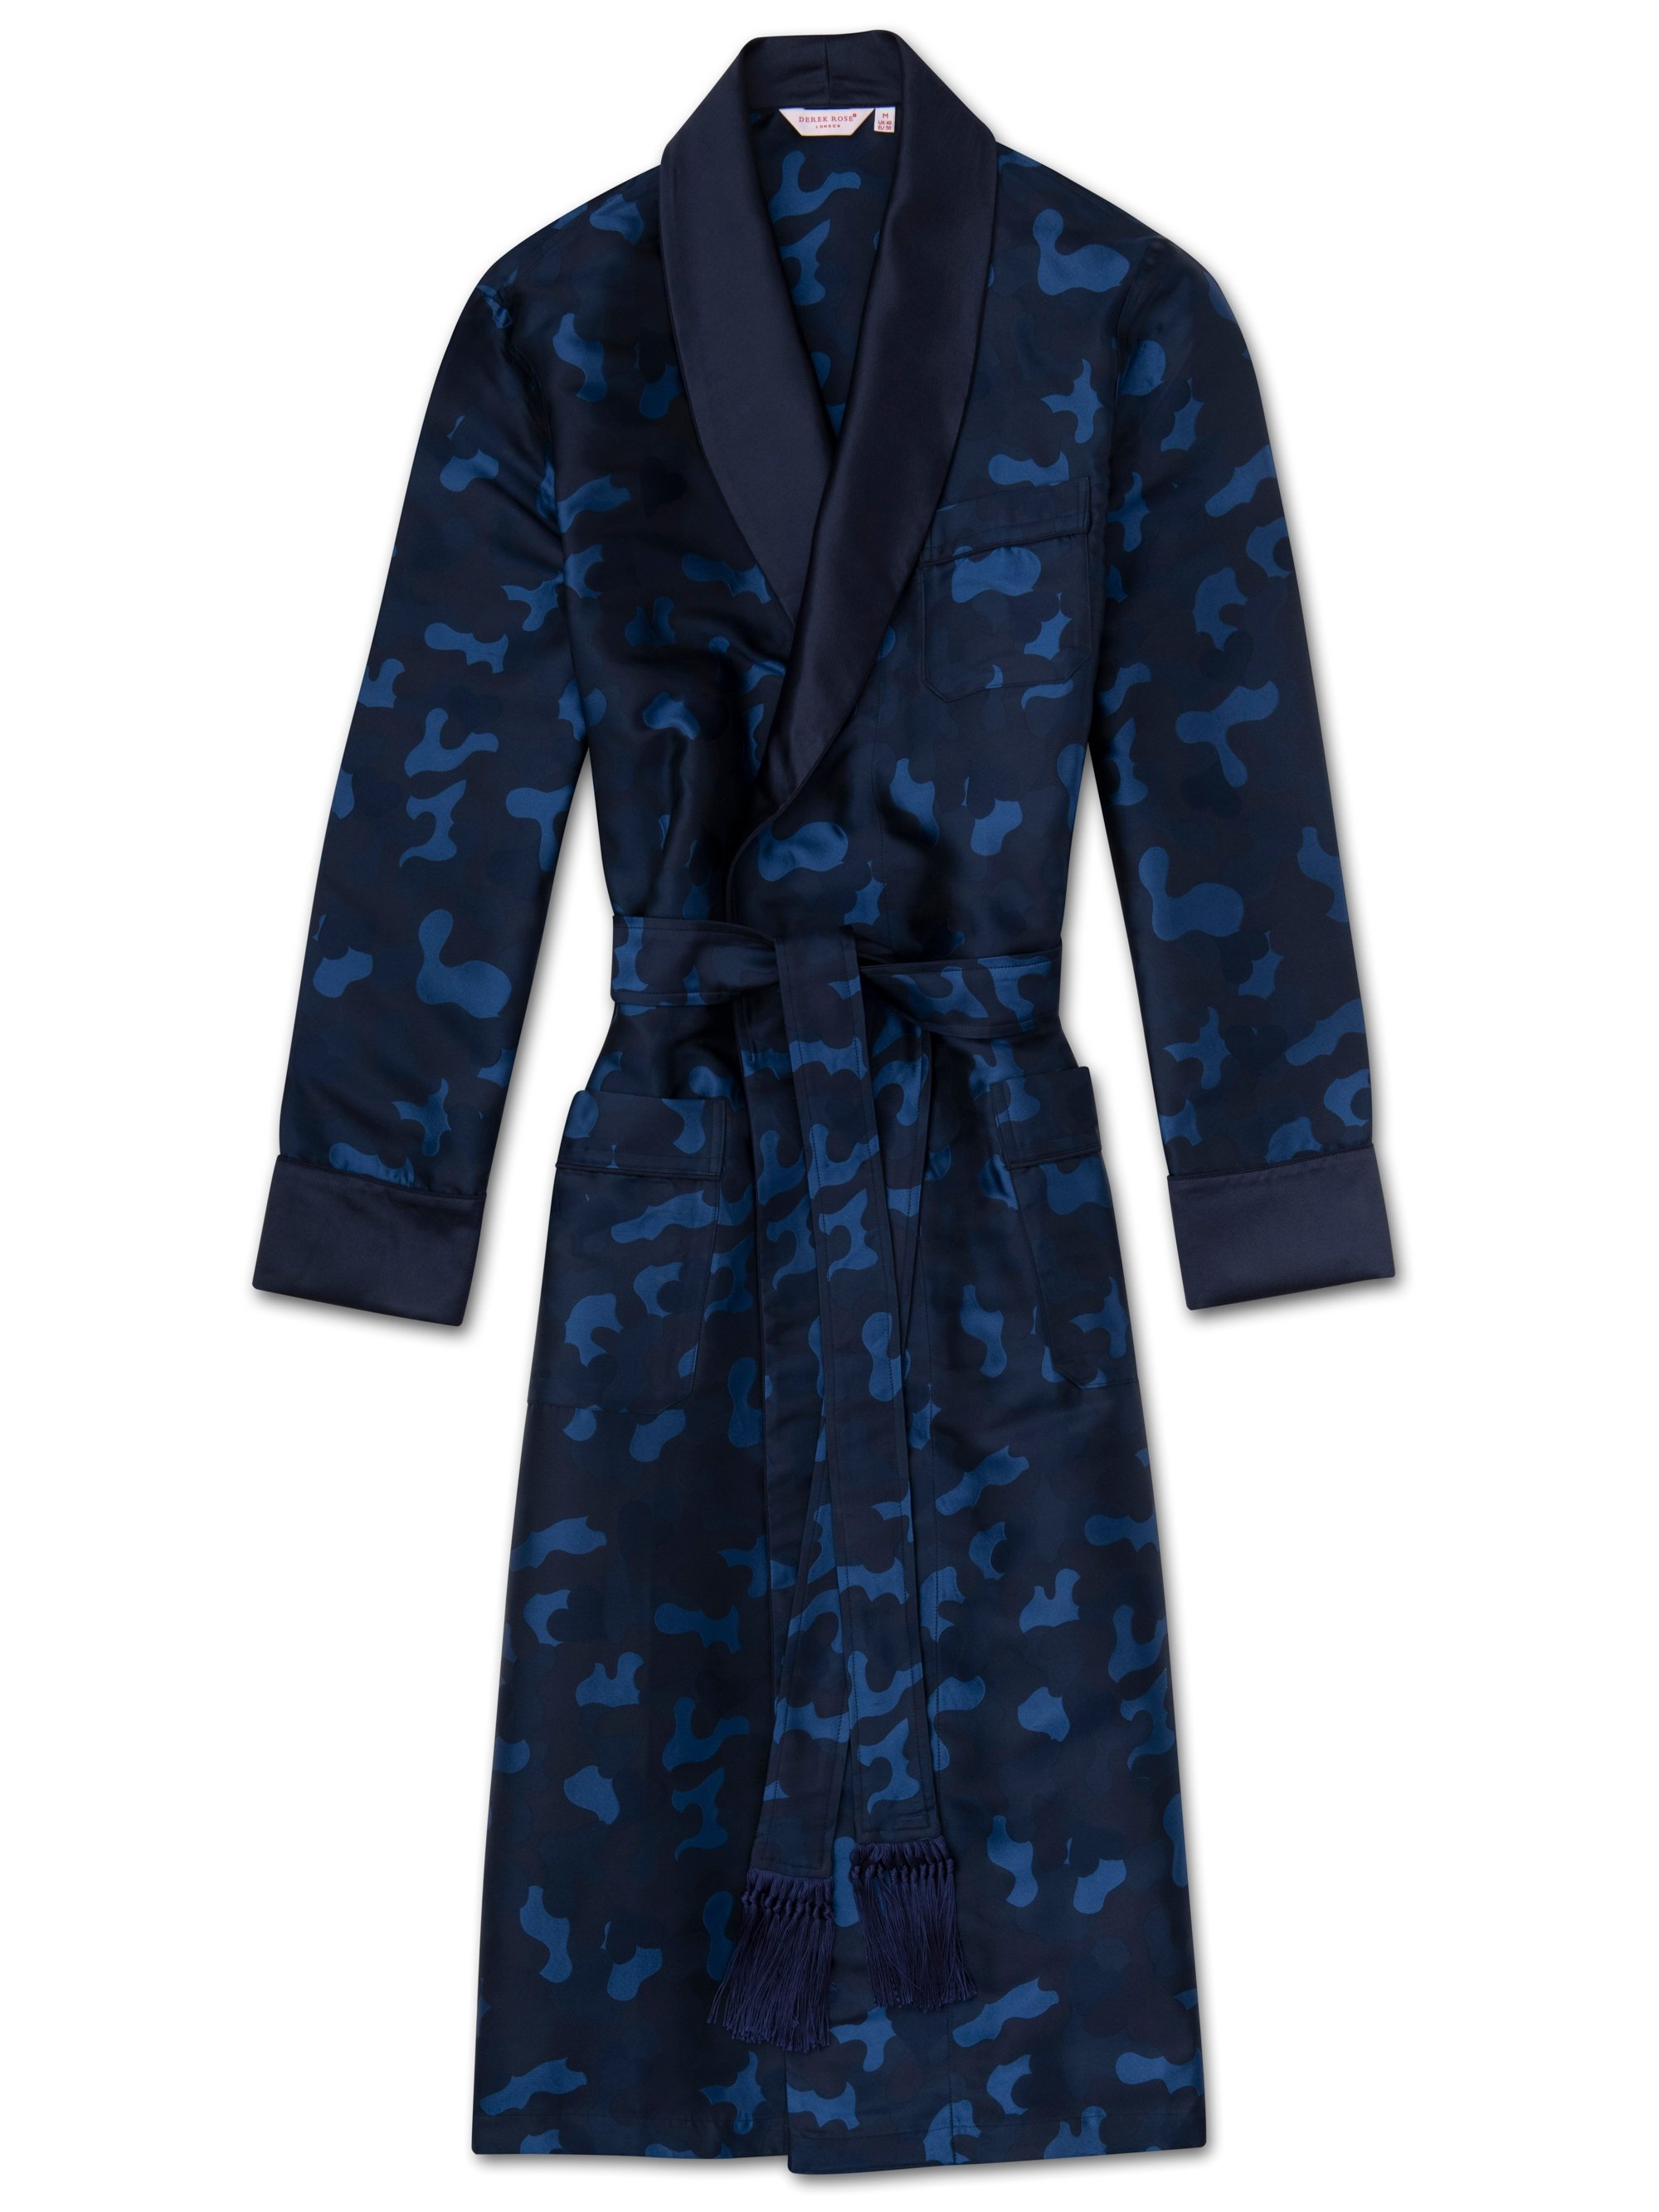 Men's Tasseled Belt Dressing Gown Verona 51 Pure Silk Jacquard Navy